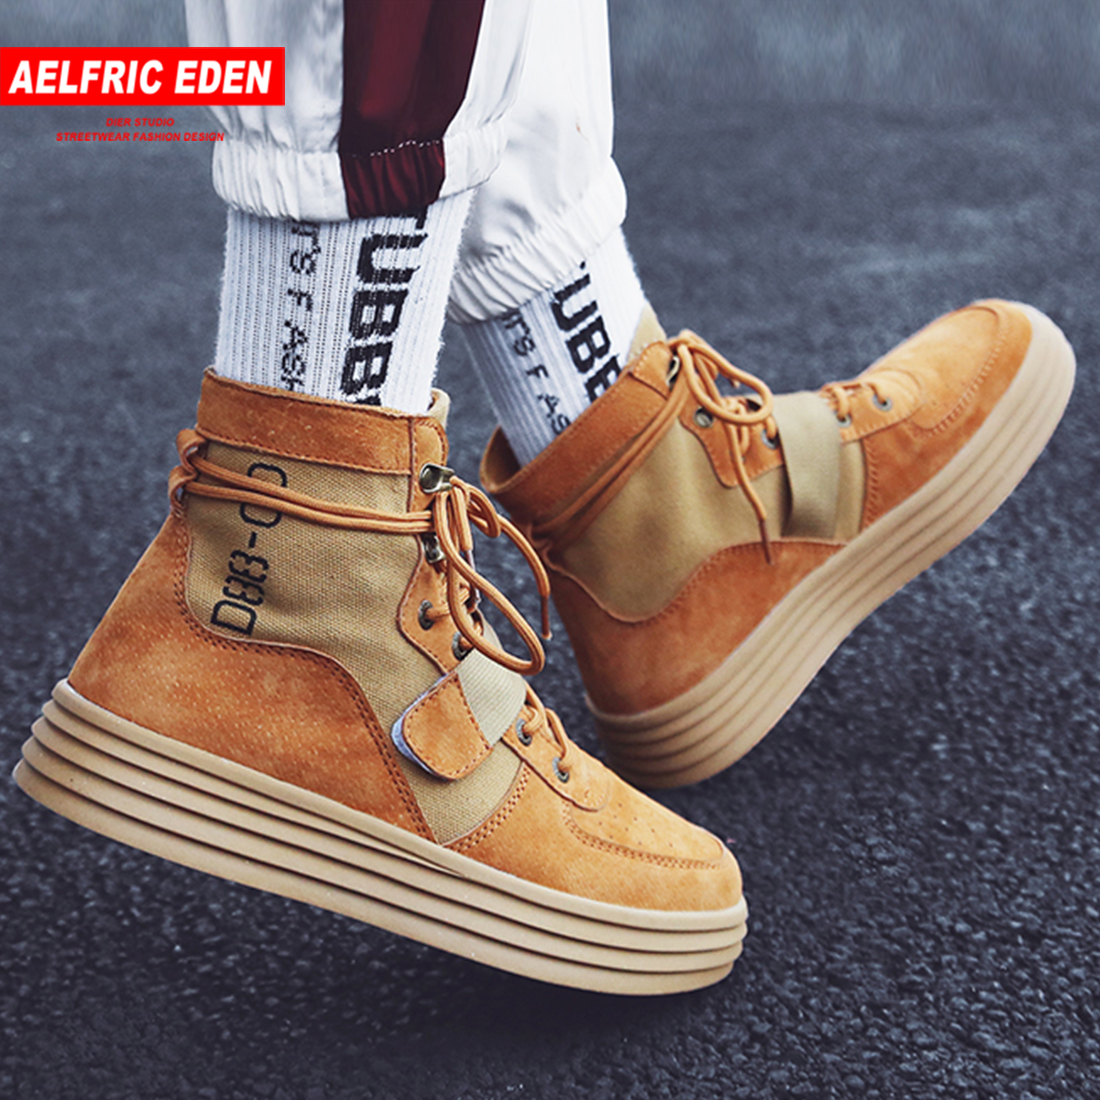 Aelfric Eden Flat Platform Ankle Boots 2019 Spring Autumn Lace up  Elastic Band Shoes male High Fashion Motorcycle Sneakers  AE27Motorcycle boots